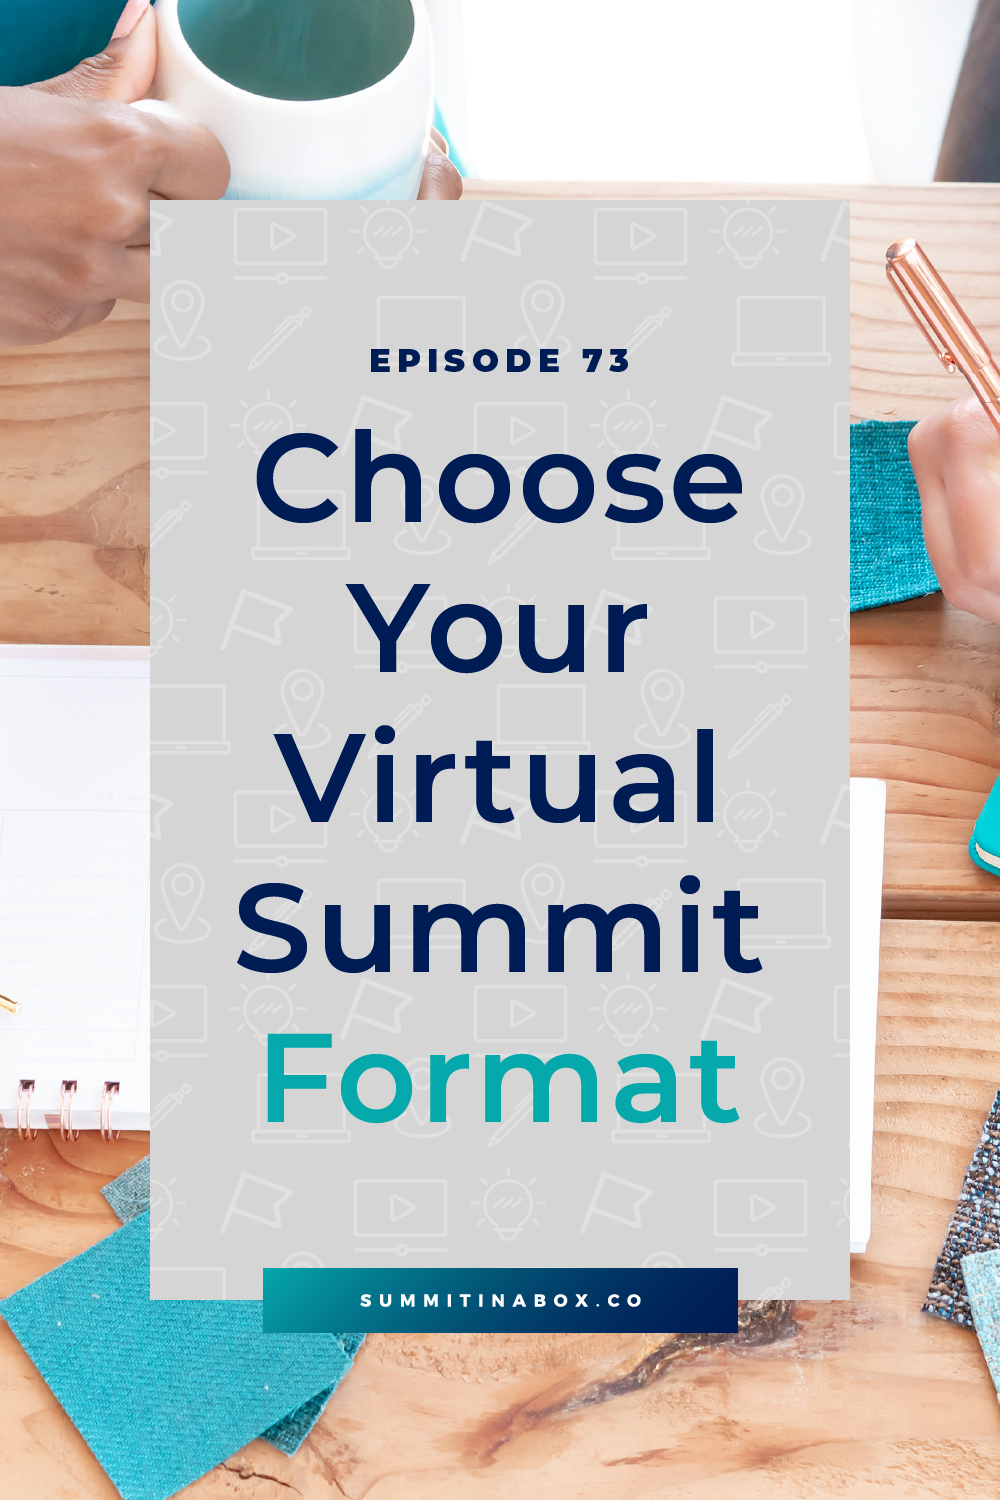 Not sure if your virtual summit should be live or pre-recorded? Have presentations or interviews? Be two days or five? Let's choose your virtual summit format.